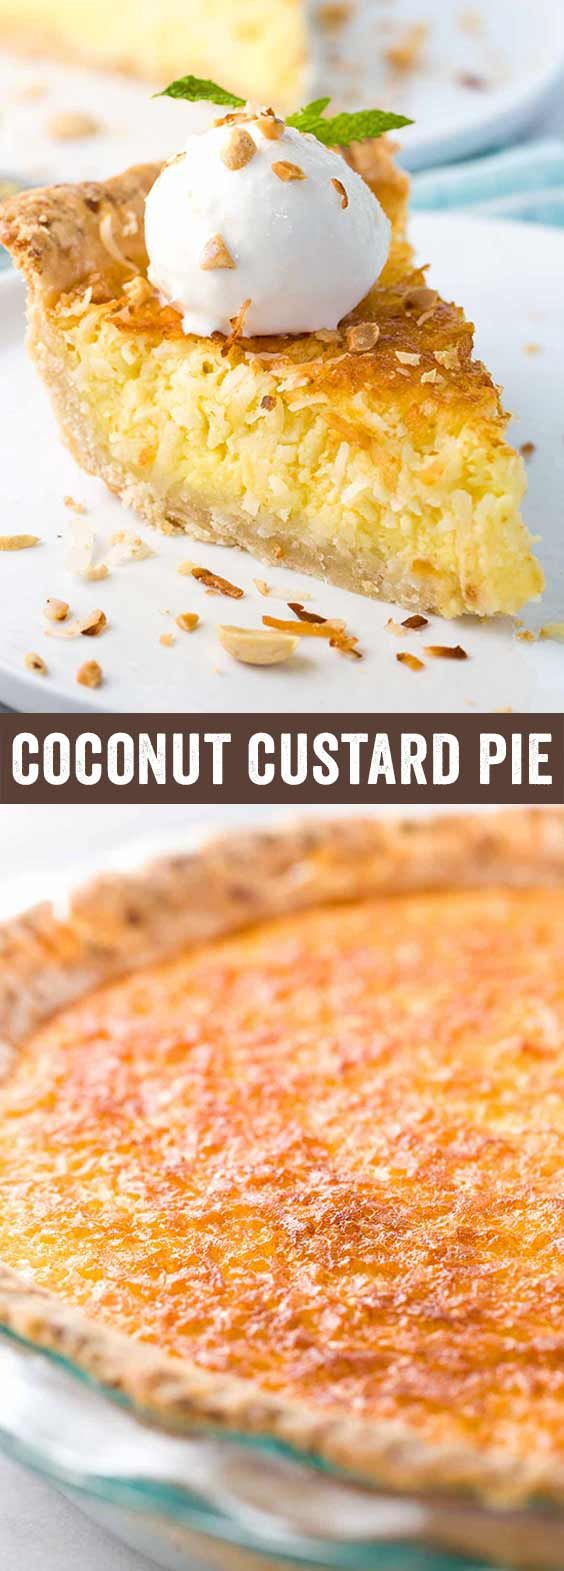 Coconut custard pie recipe with a flaky crust and egg custard filling. This tropical dessert is best served warm with a scoop of vanilla bean ice cream. via @foodiegavin